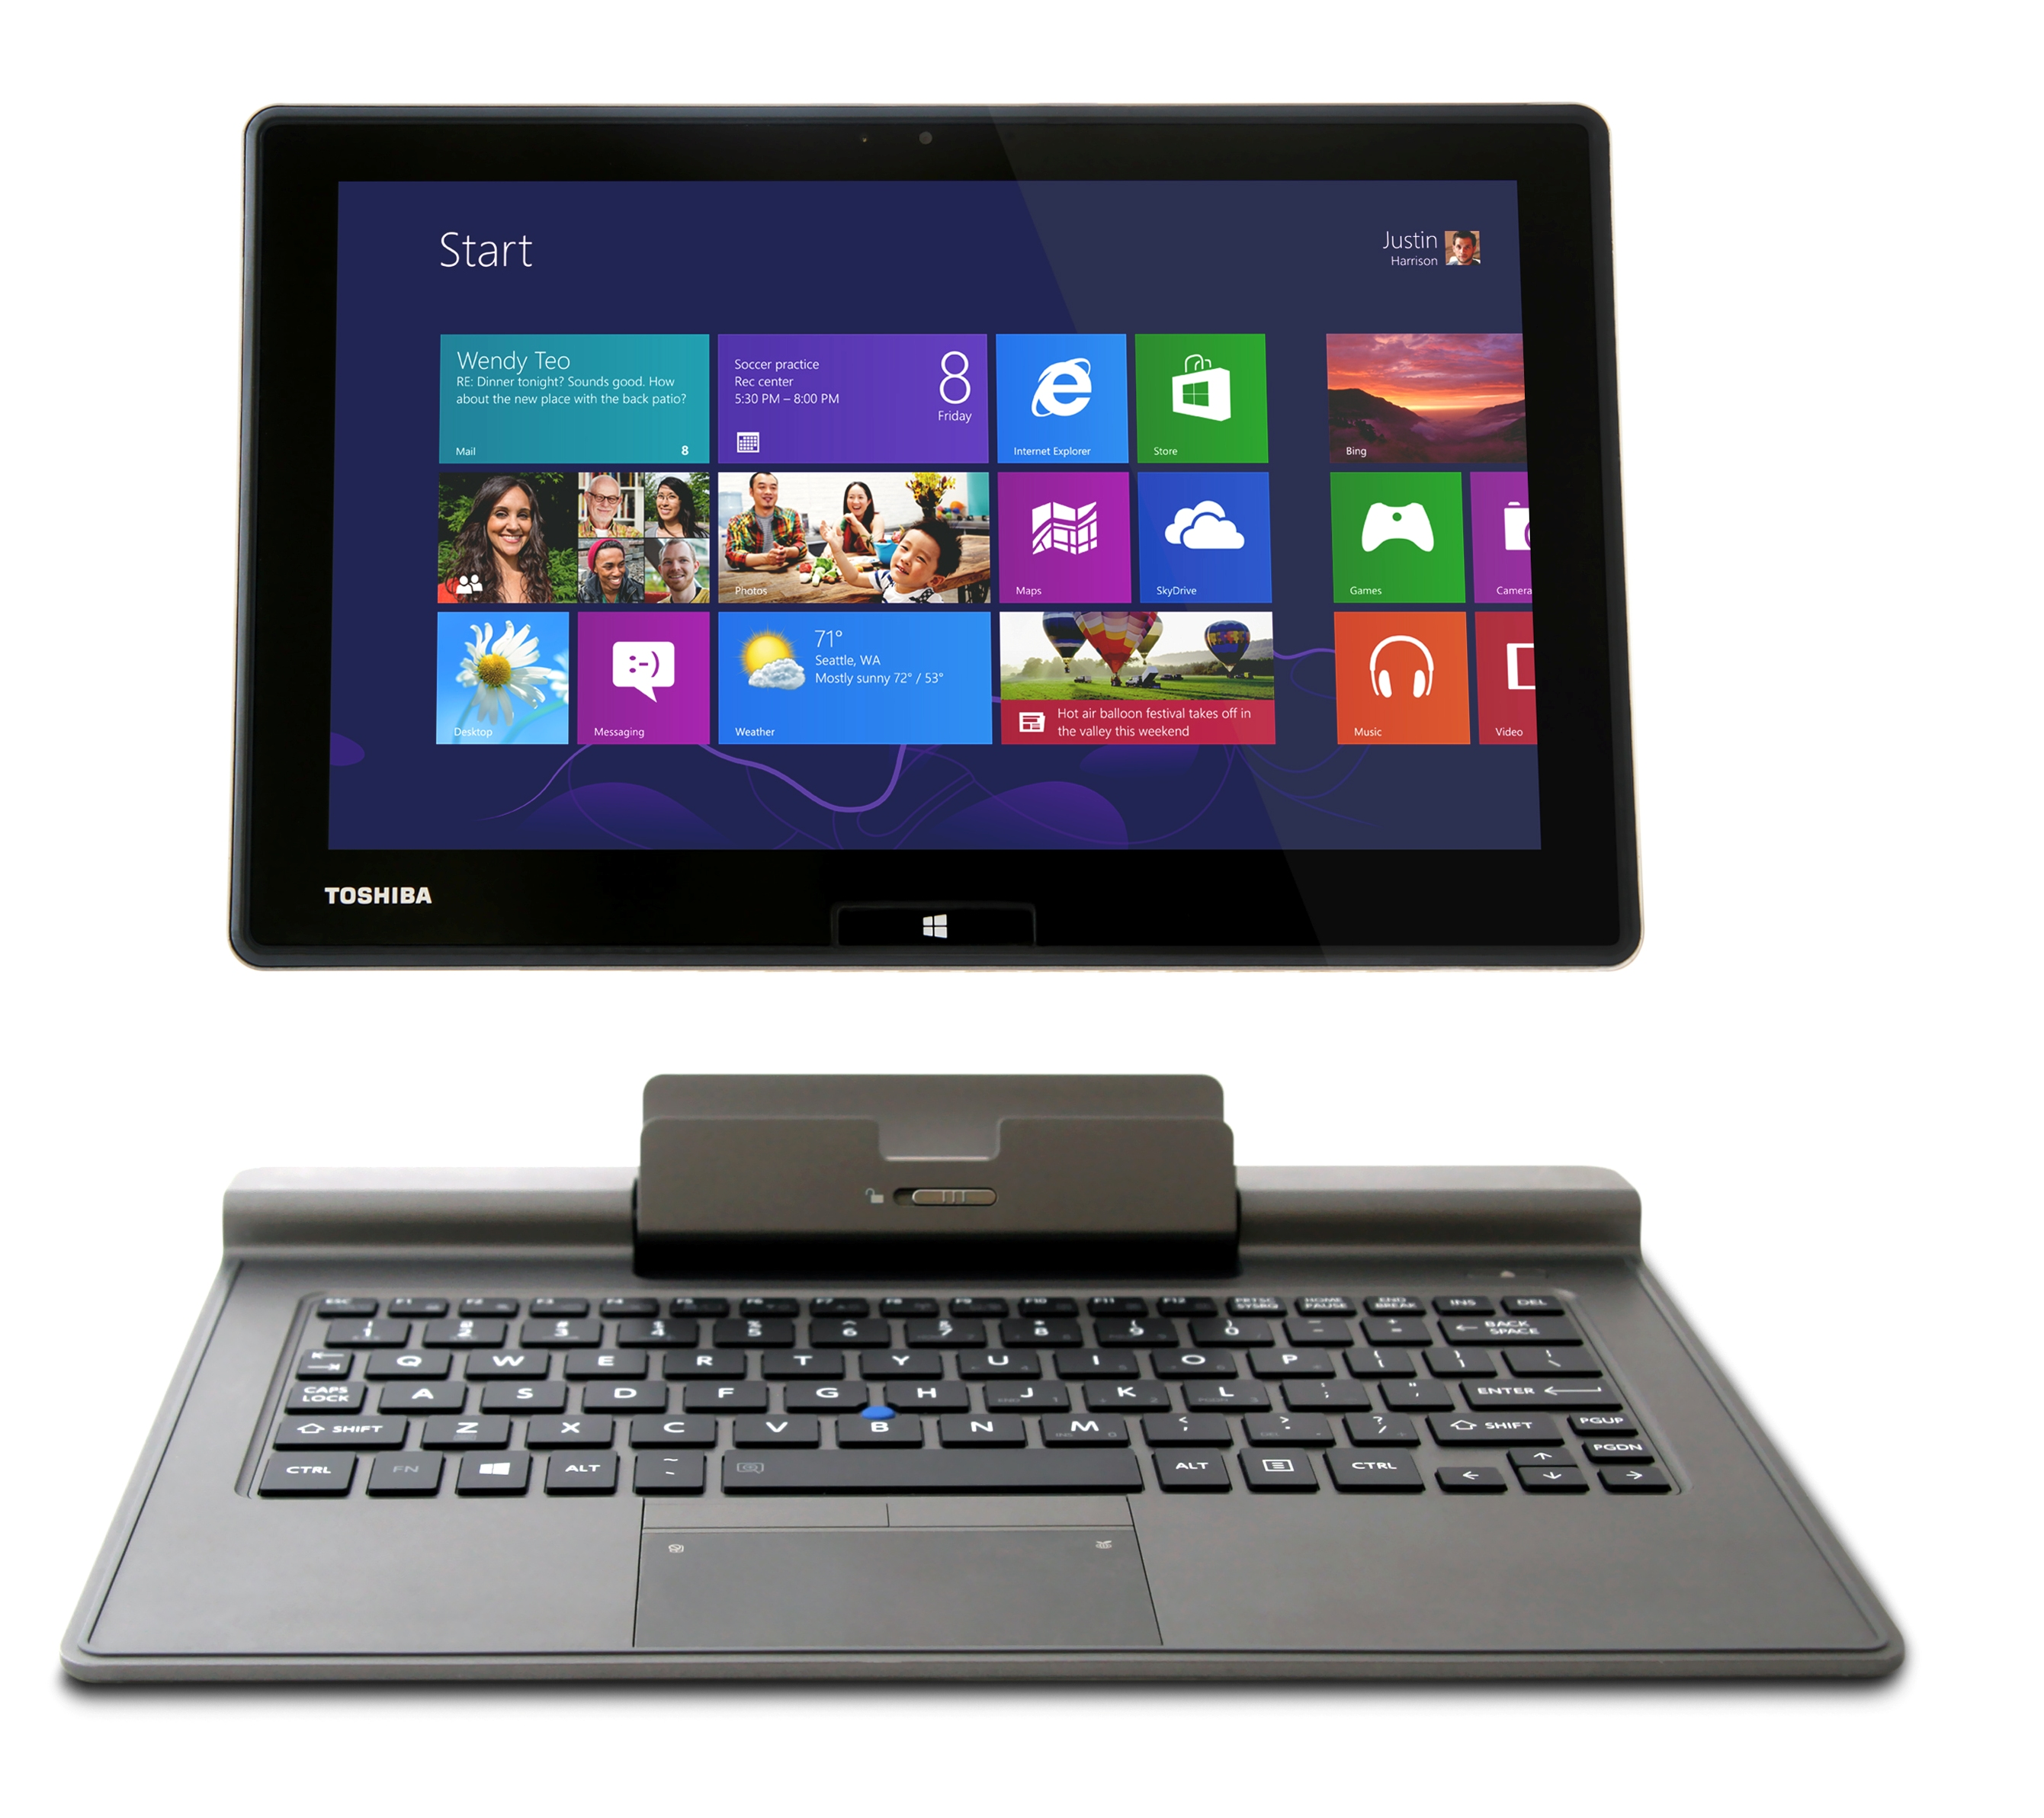 Toshiba Port 233 G 233 Z10t Hybrid Tablet Pc